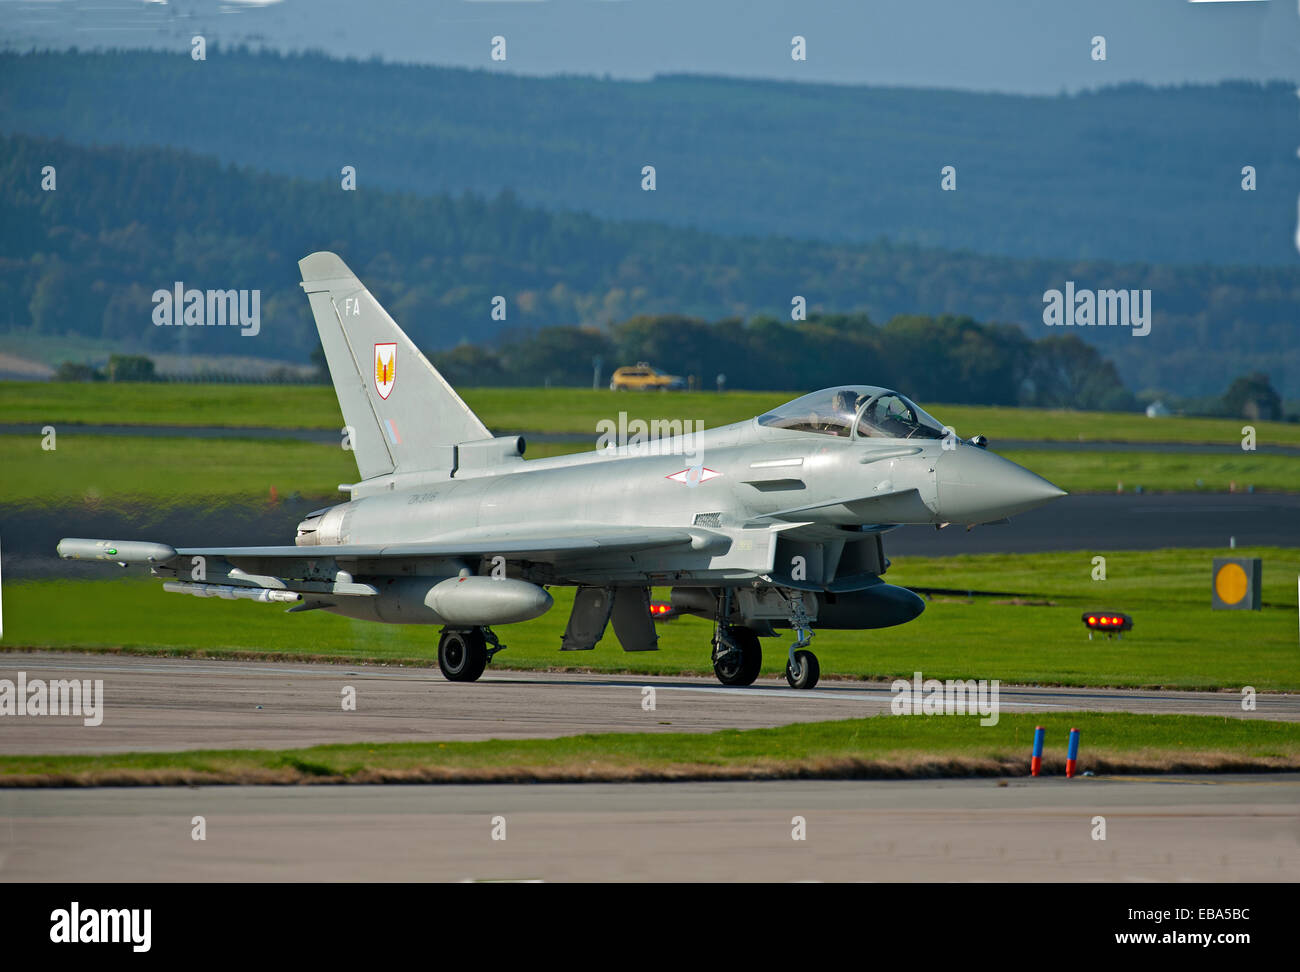 Eurofighter Typhoon FRG4 Military Fast Jet Fighter on taxiway at RAF Lossiemouth.  SCO 9243 - Stock Image